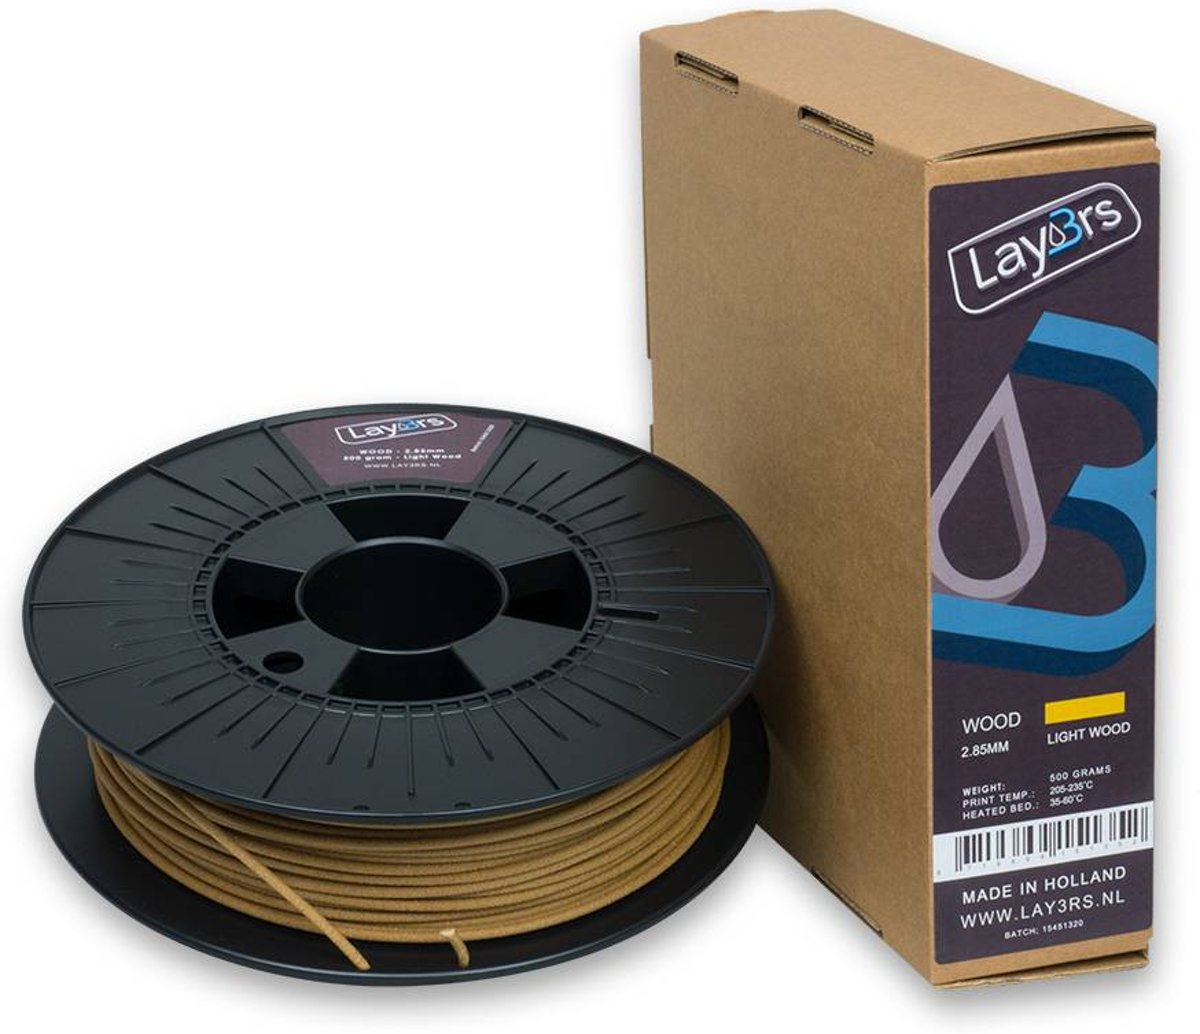 Lay3rs Woodfill Light Wood - 2.85 mm